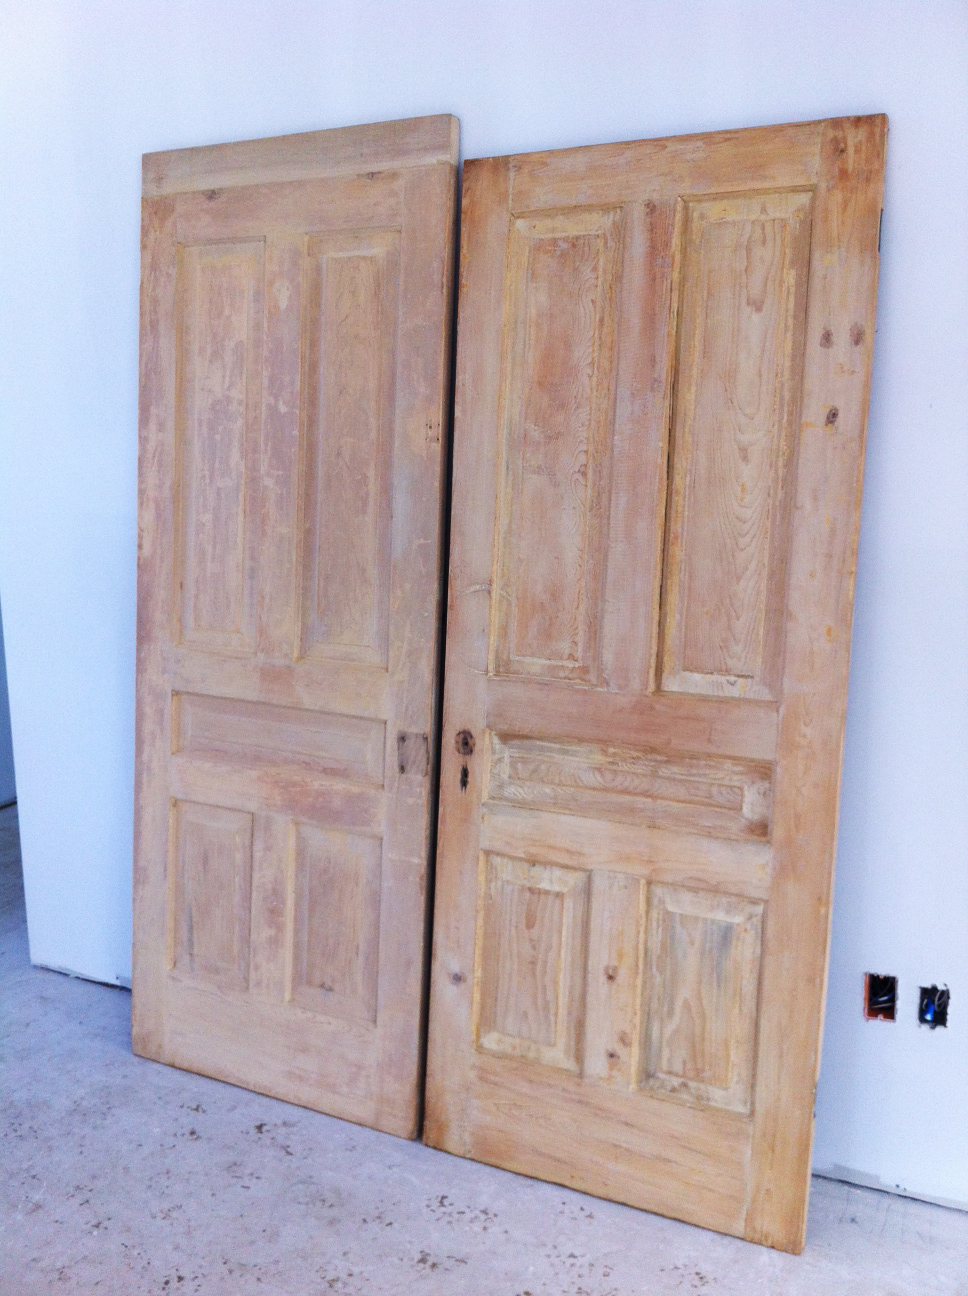 Building Walnut Farm Antique Interior Doors Newel Posts Antique Interior  Doors Newel Posts Stokkelandfo Images - Antique Doors Toronto & Indian Primitive And Antique Furniture And